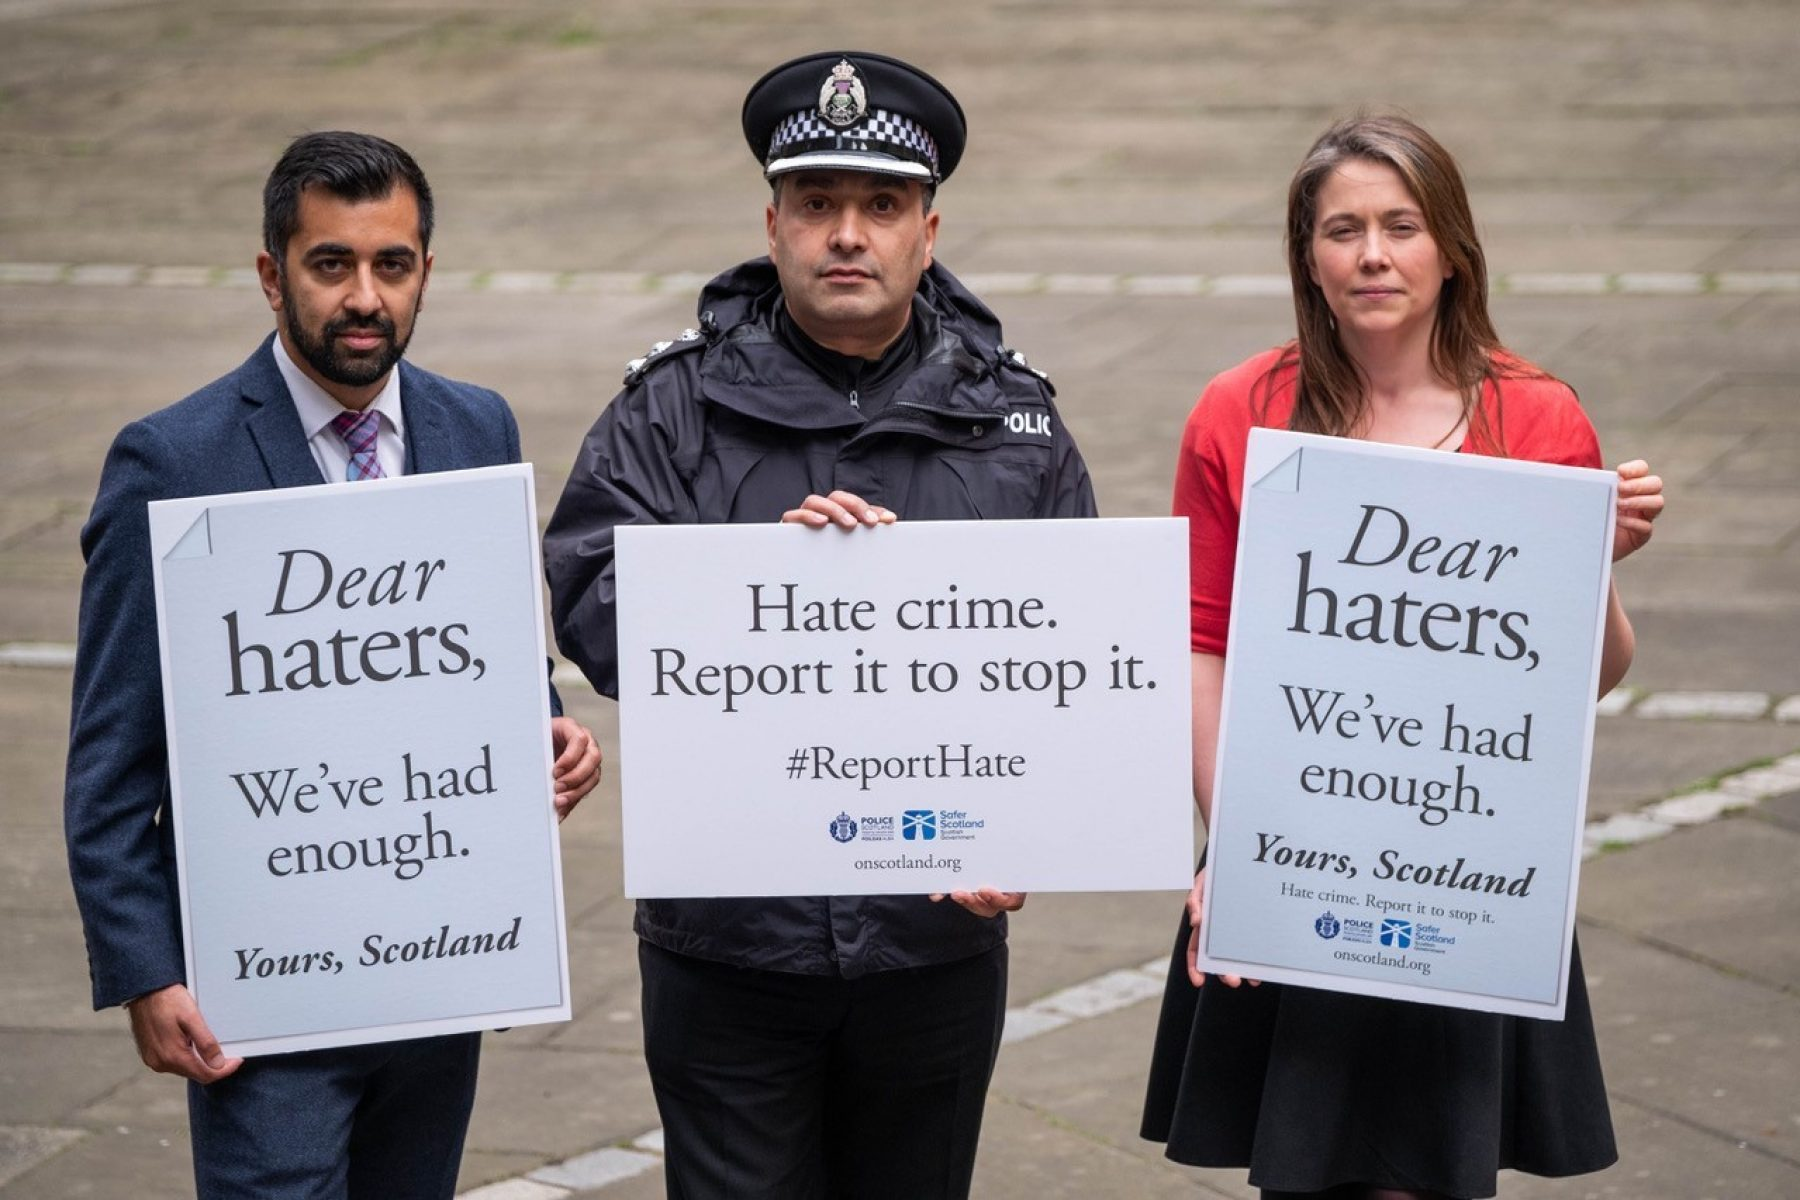 Scotland hate crime bill seeks to criminalize 'dinner table' conversations